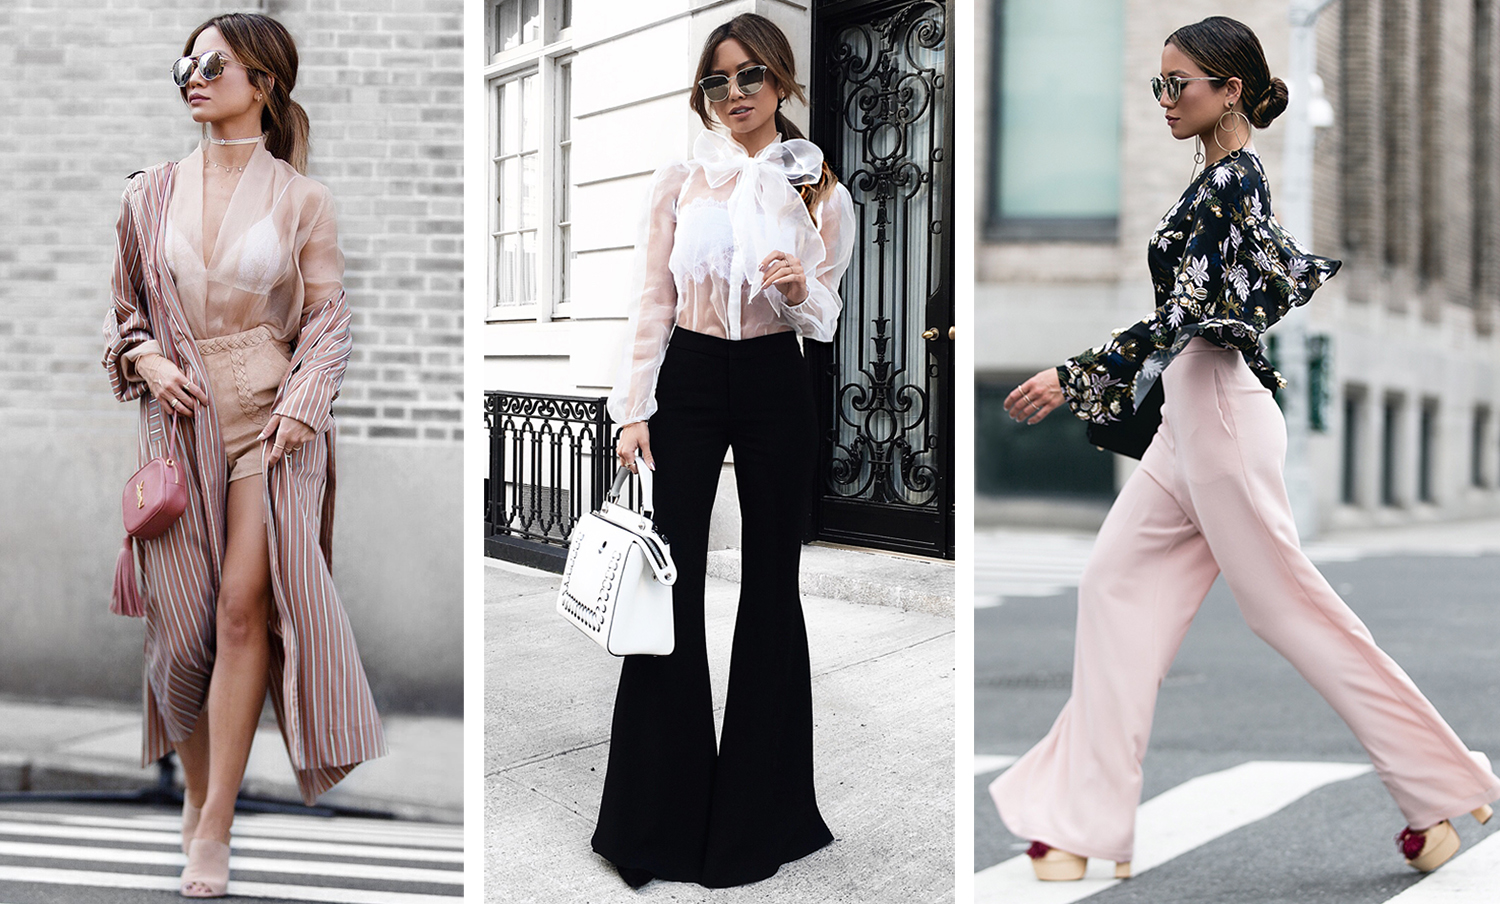 94a8321df91 My Favorite NYFW Outfits Roundup - mywhiteT